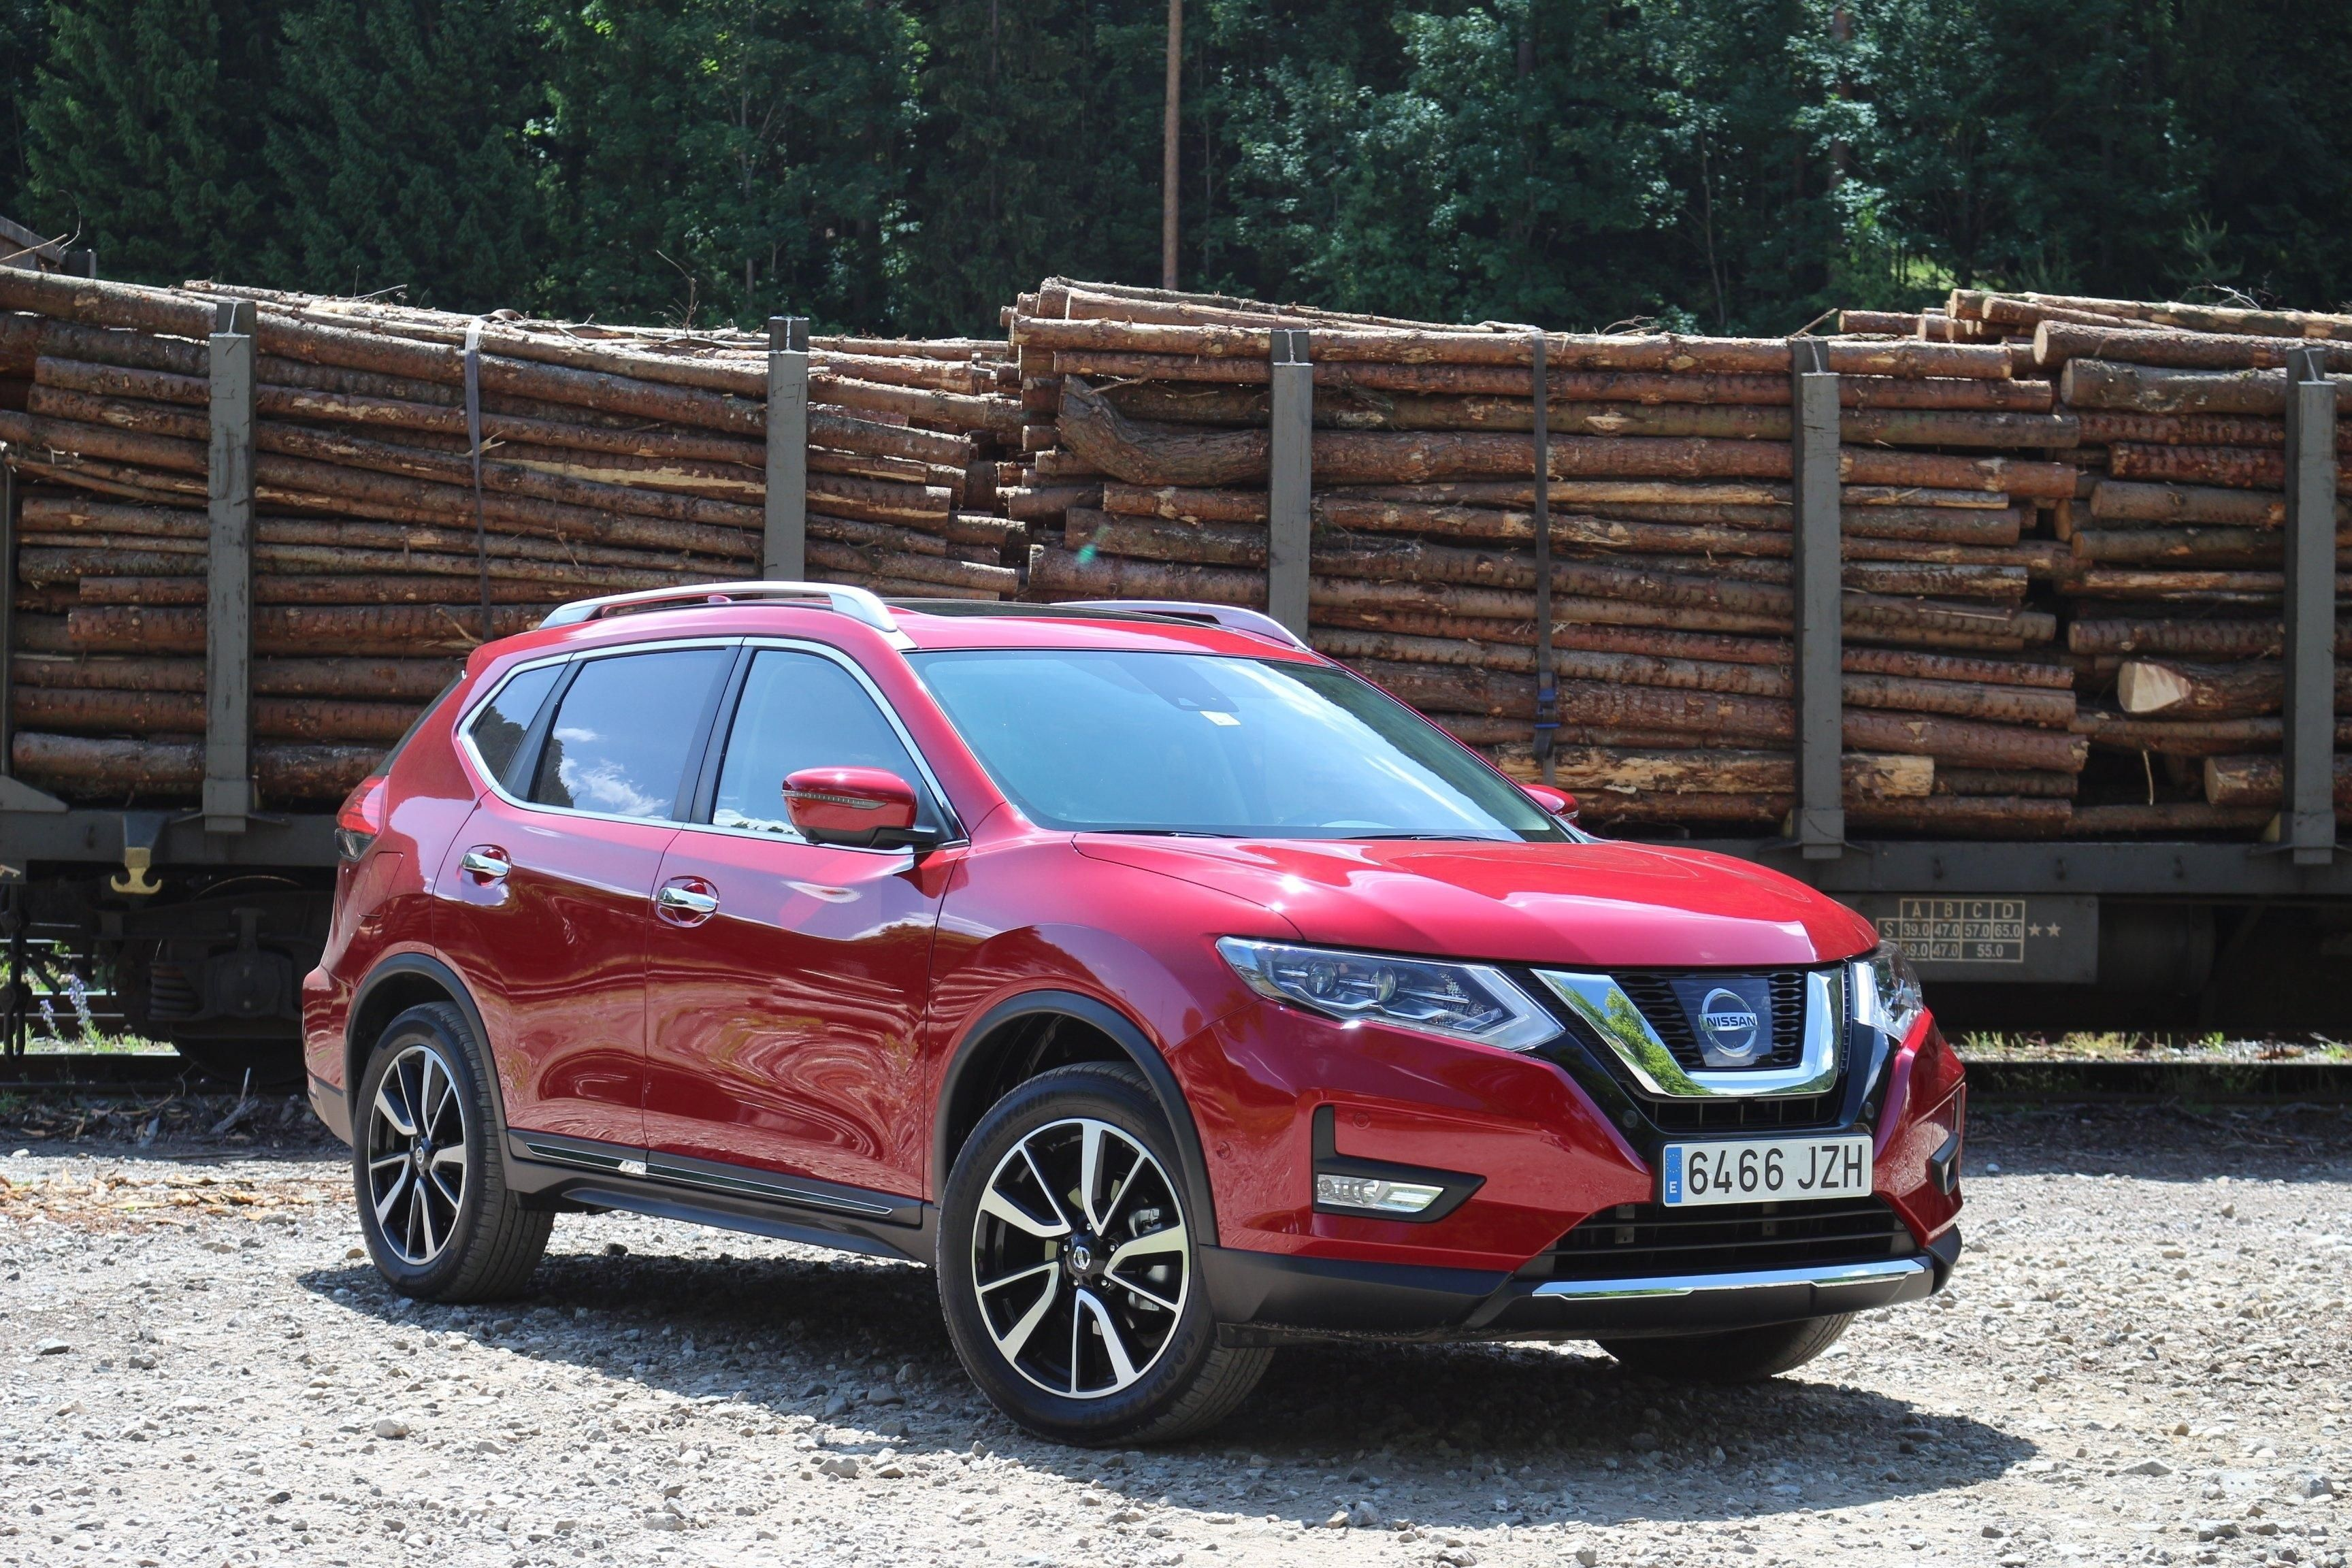 nissan xtrail 2018 price : car review 2018 pertaining to nissan x